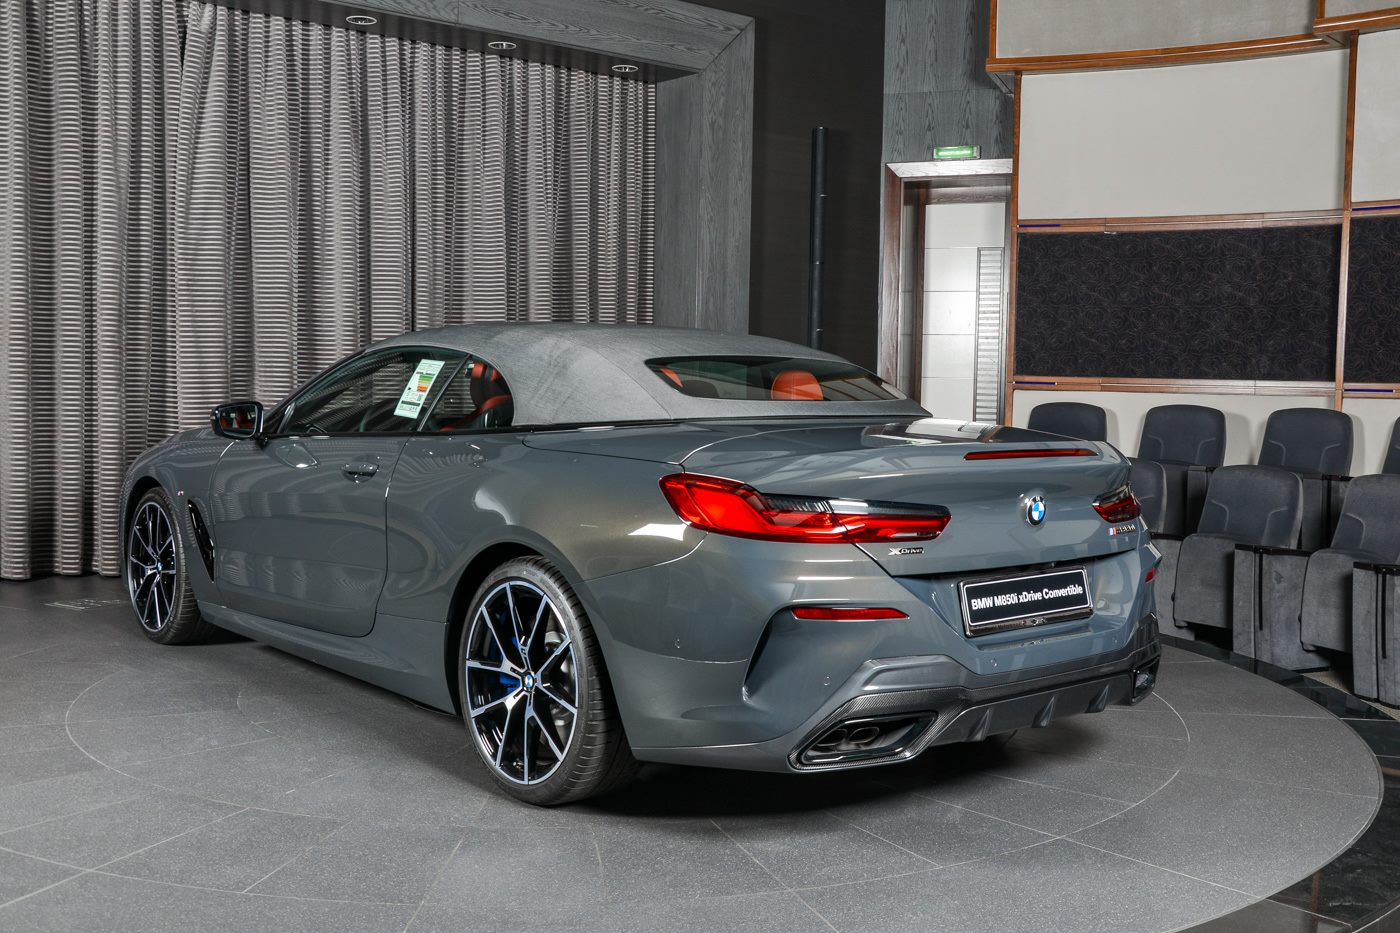 Bmw M850i Xdrive Convertible In Dravit Grey Is Cooler Than